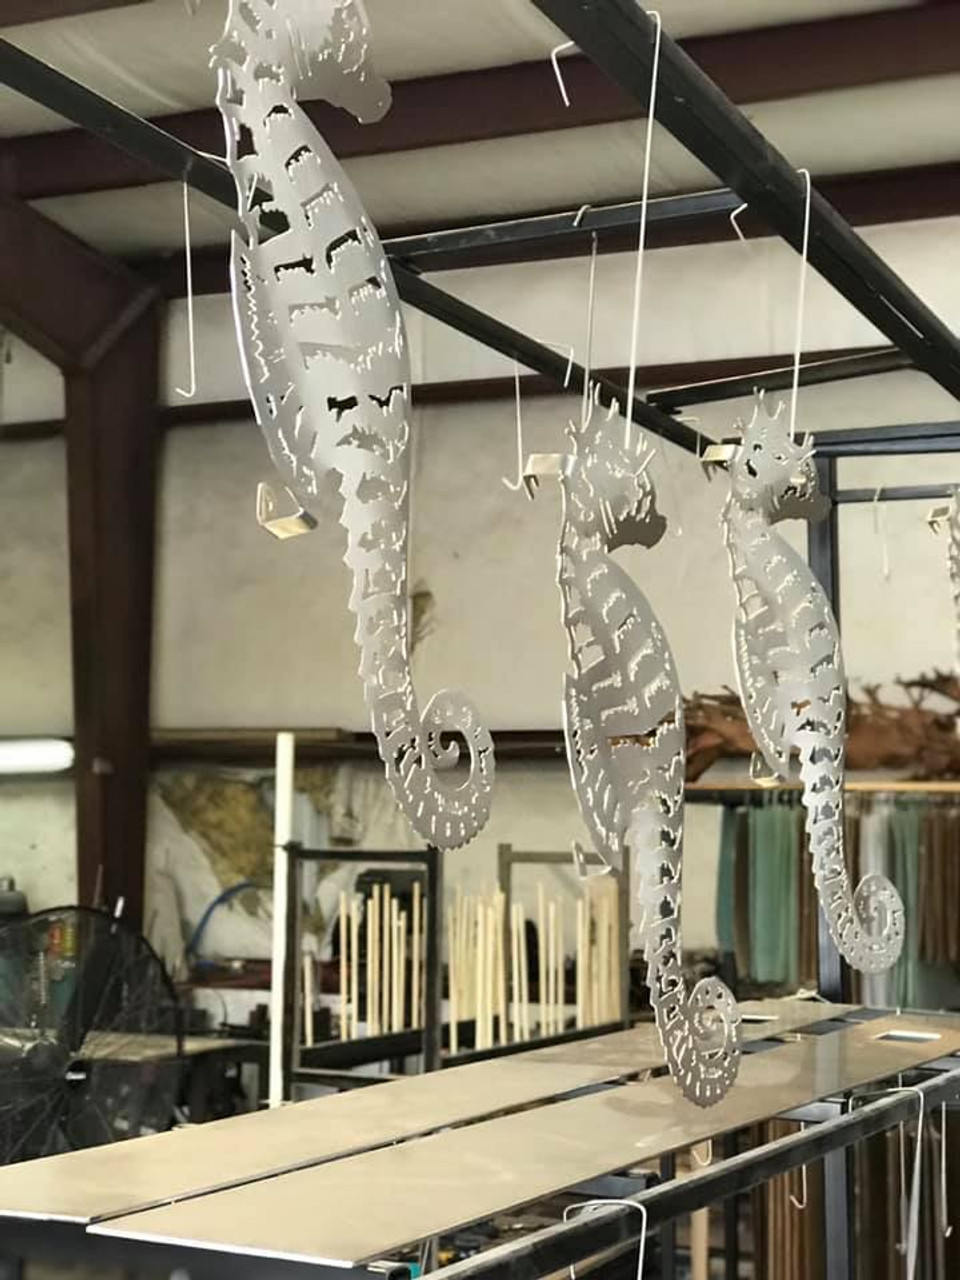 Sea Horse Stainless Steel Wall Decor - Lifestyle